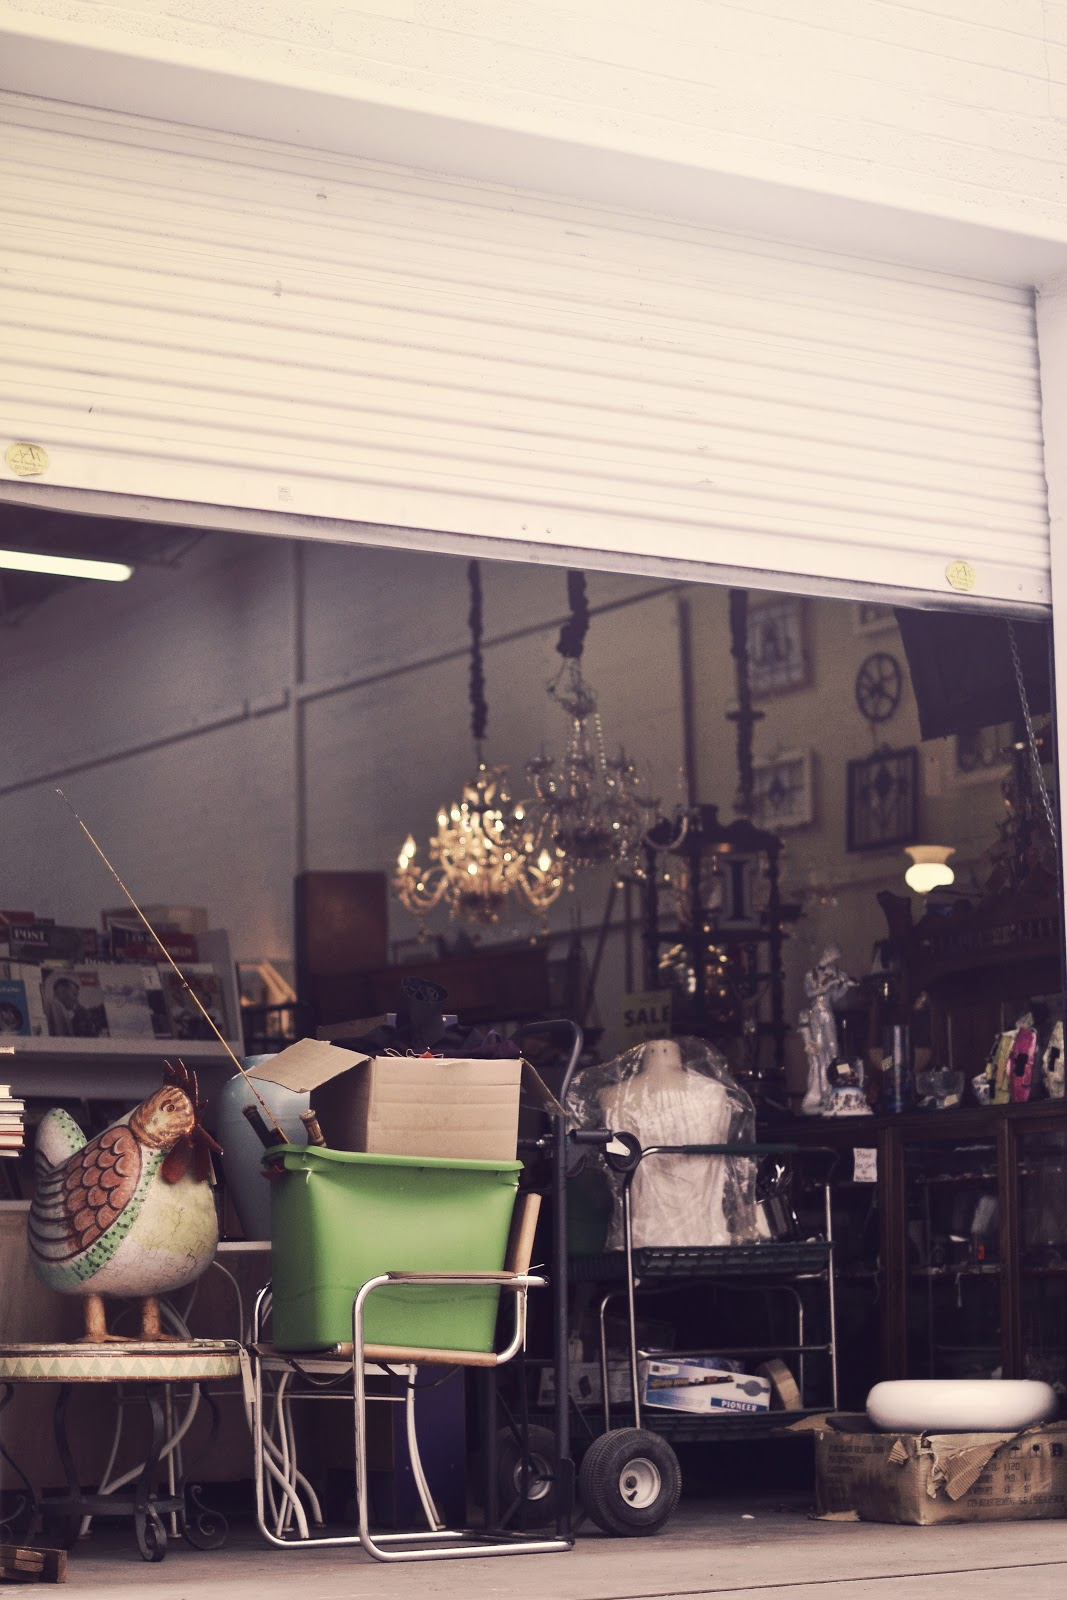 5 Tips for Finding Vintage Home Decor - The Shine Project